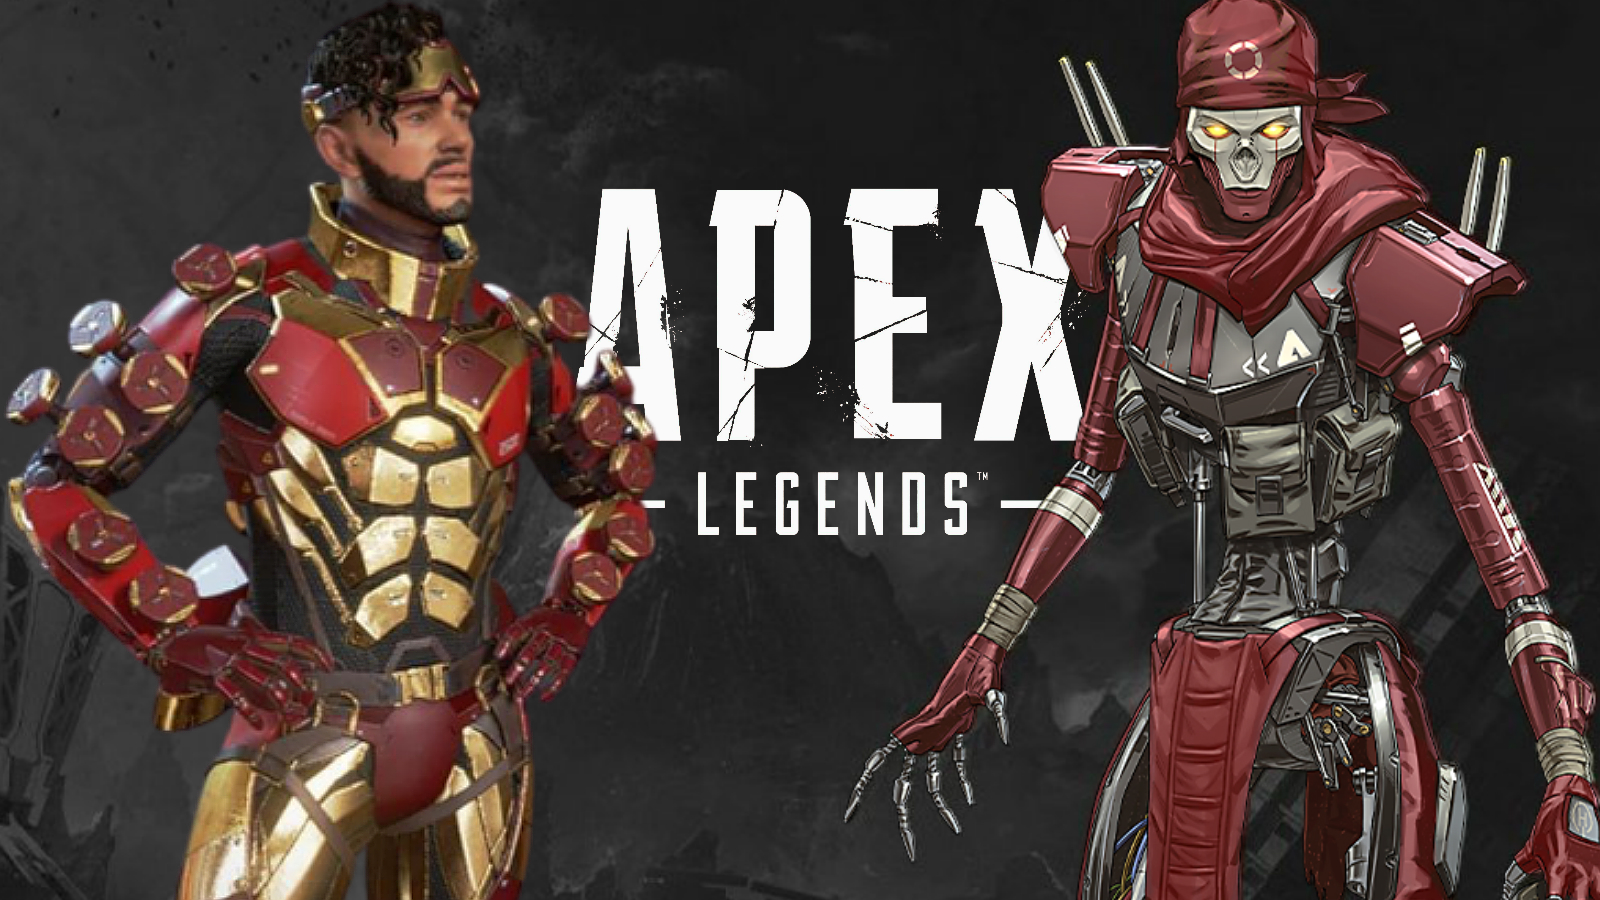 Mirage and Revenant on black background with Apex Legends logo